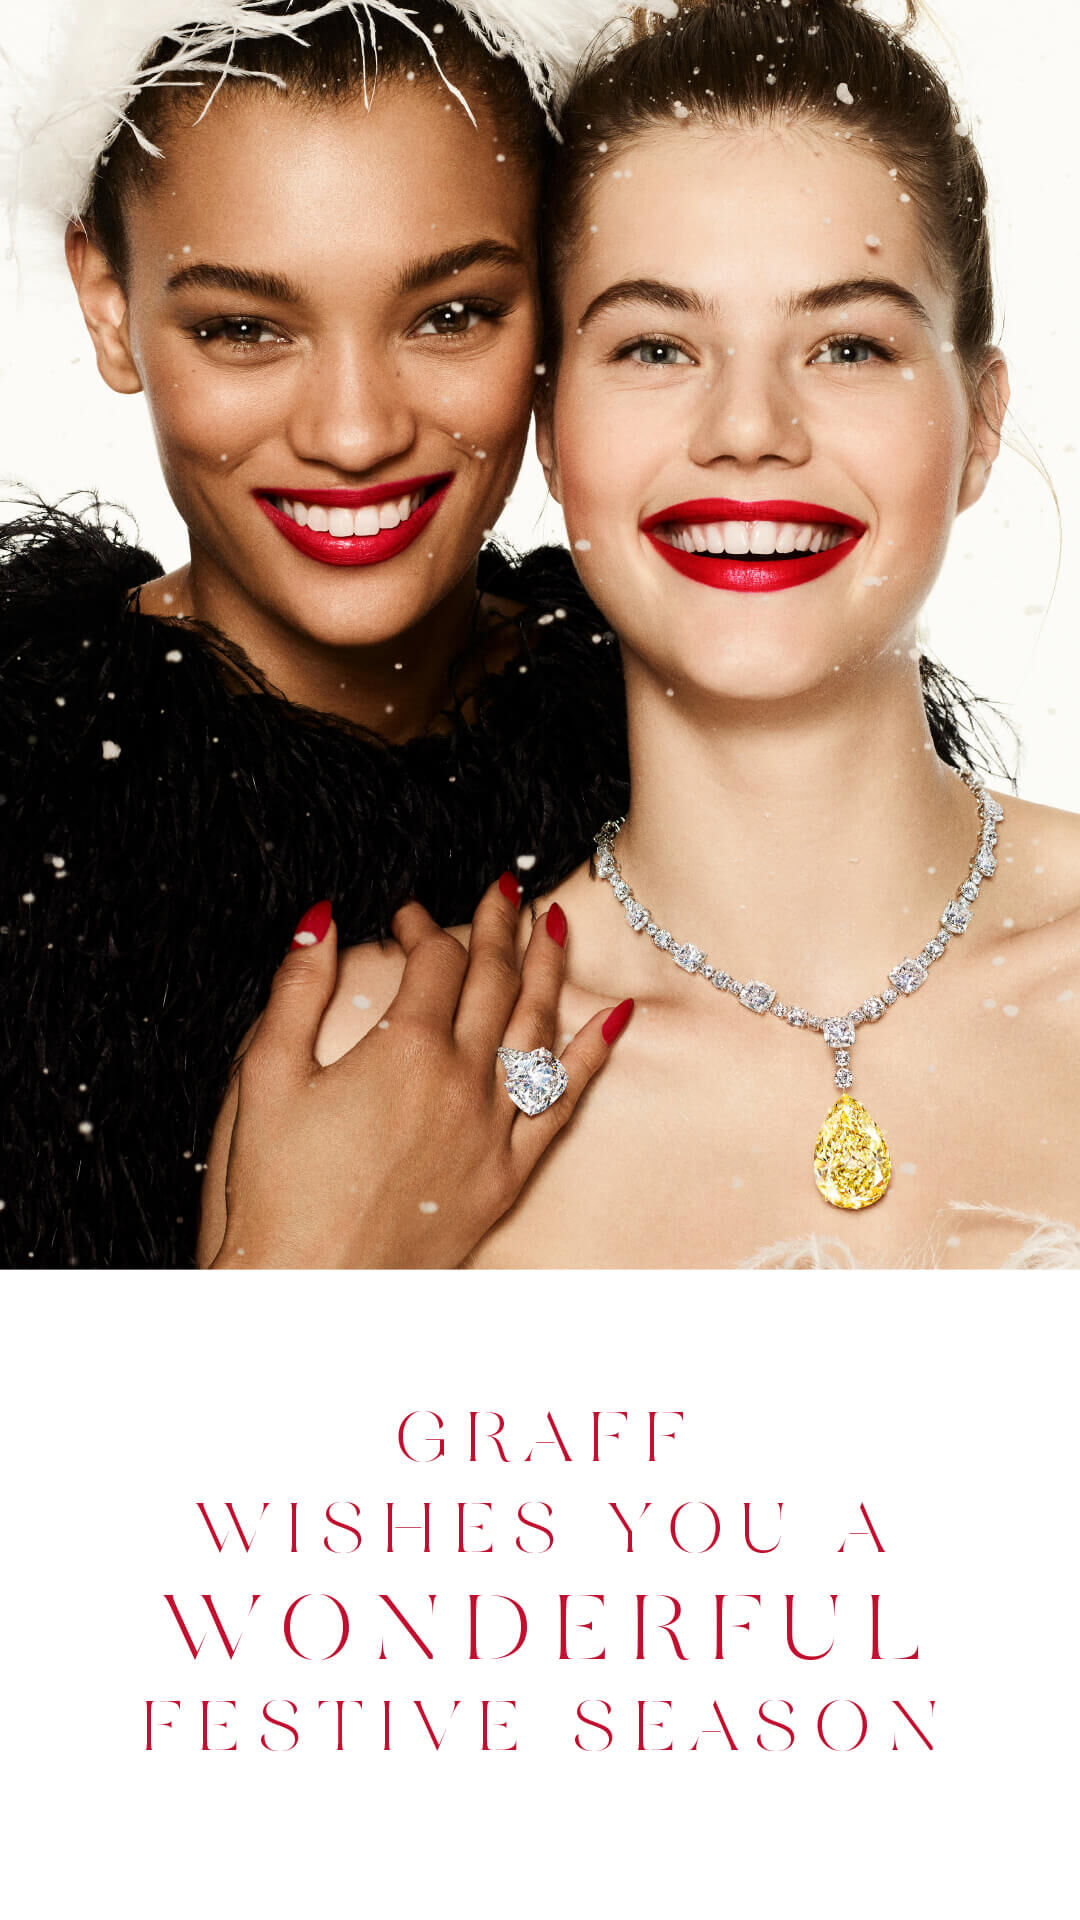 Two model wearing Graff diamond high jewellery with a 'Graff wishes you a wonderful festive season' quote